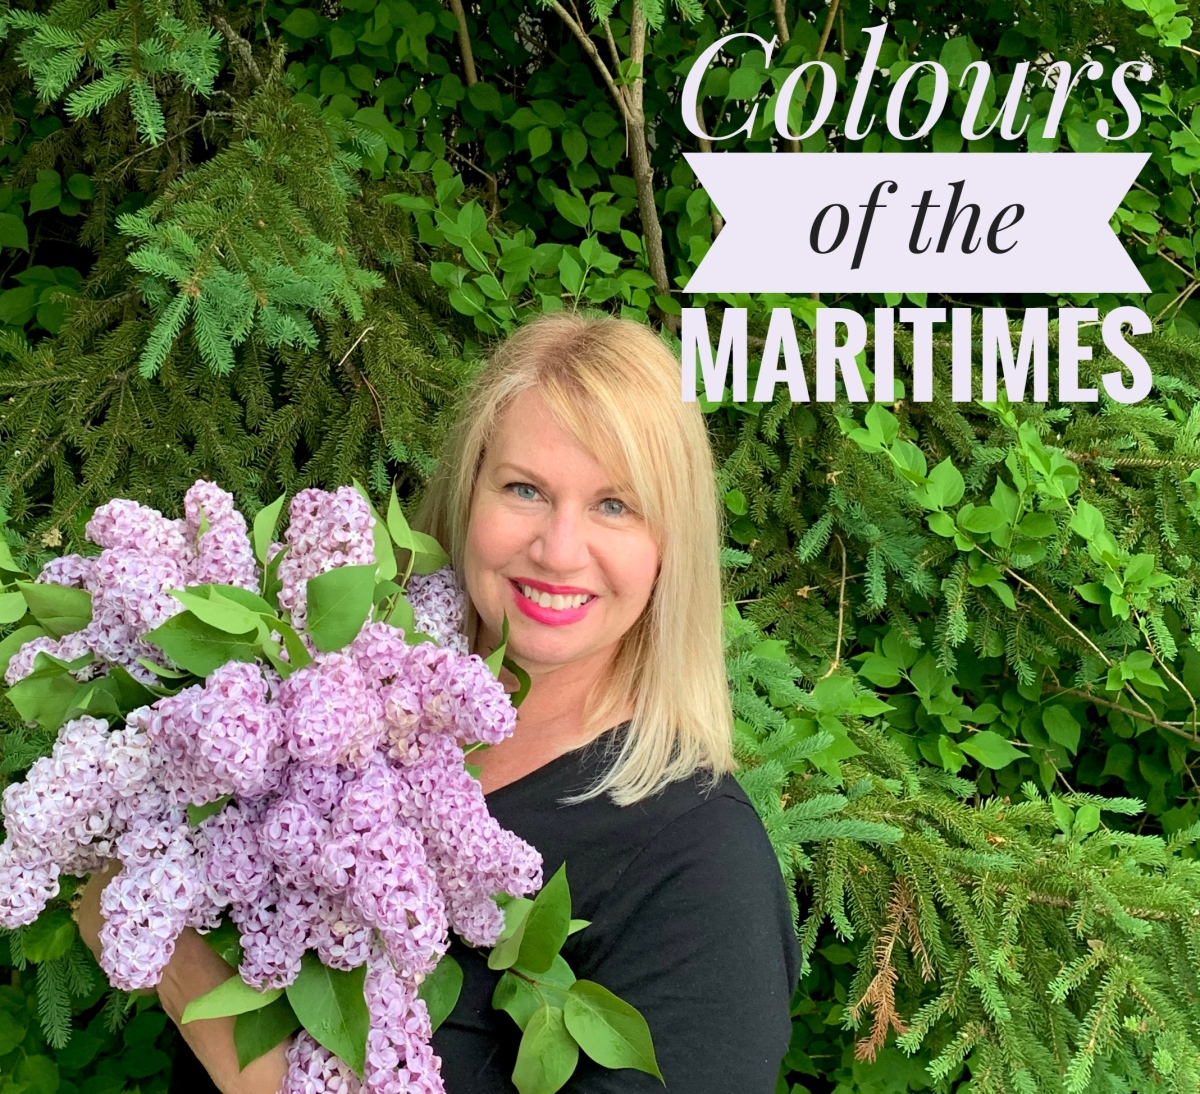 Colours of the Maritimes